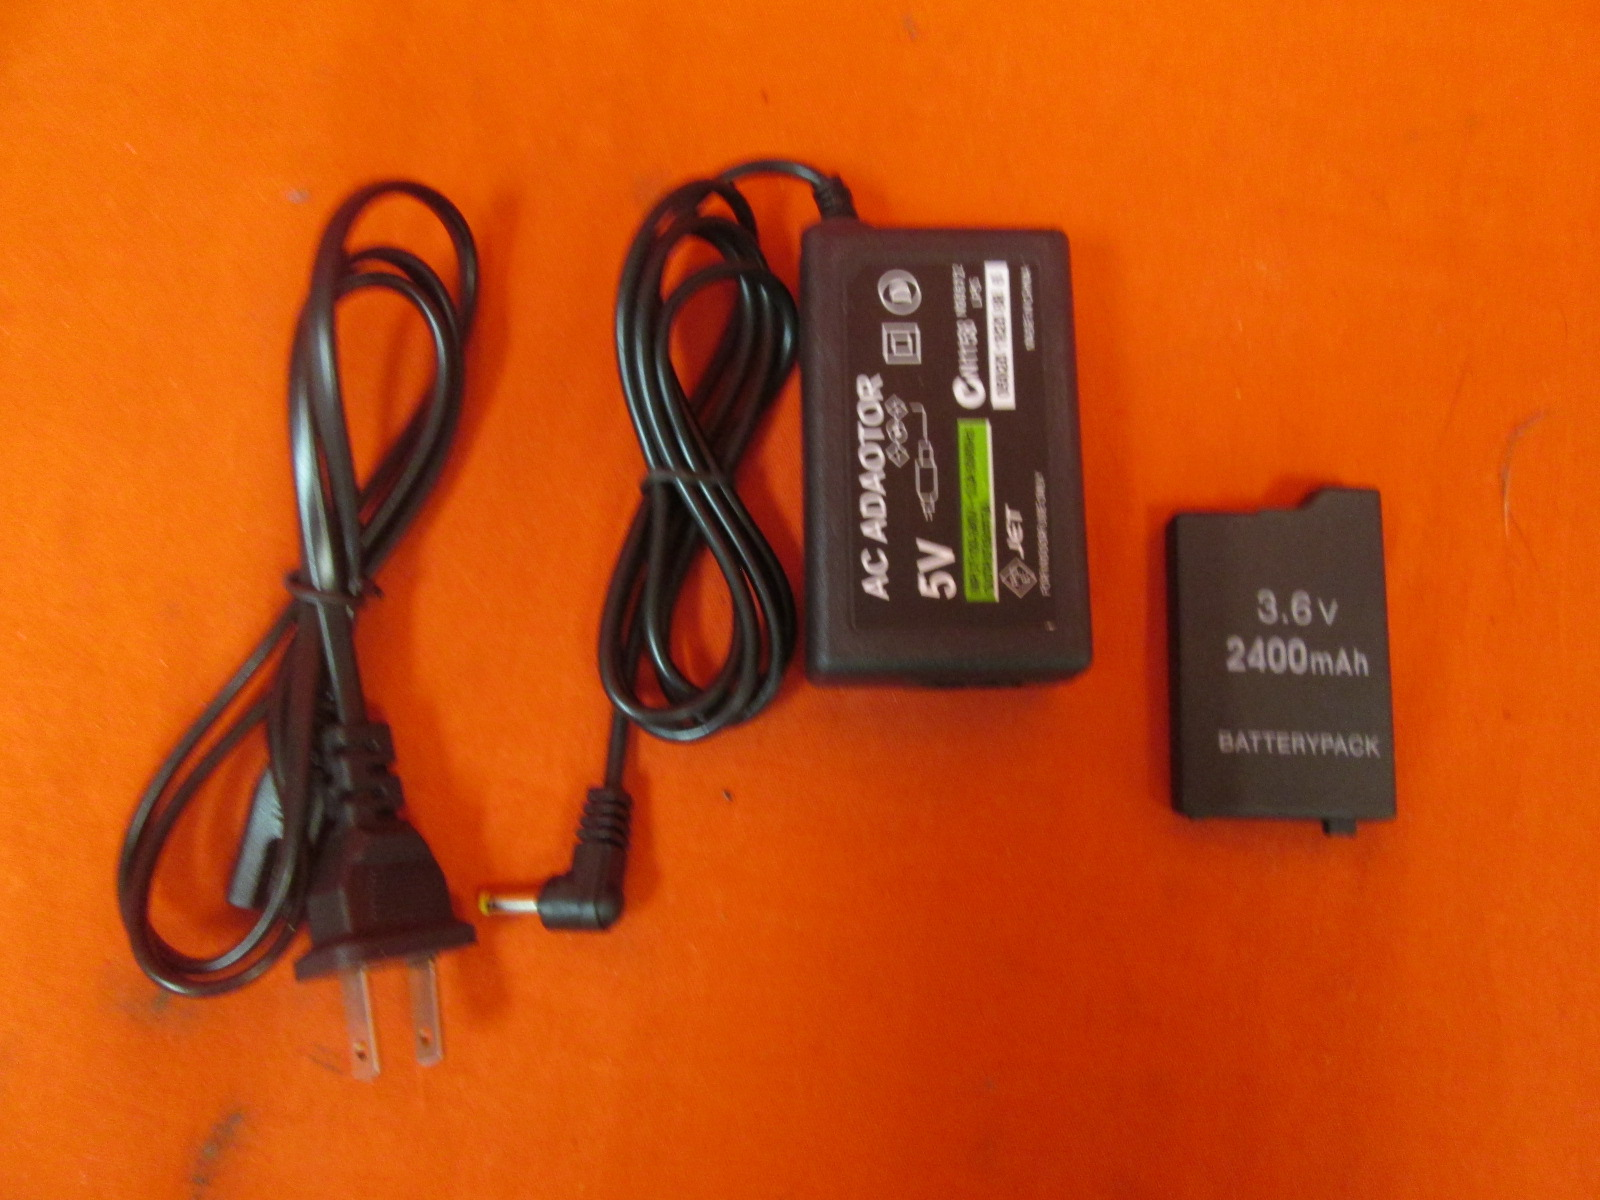 Home Travel Wall AC Charger And Battery Pack For Sony PSP 2000 And PSP